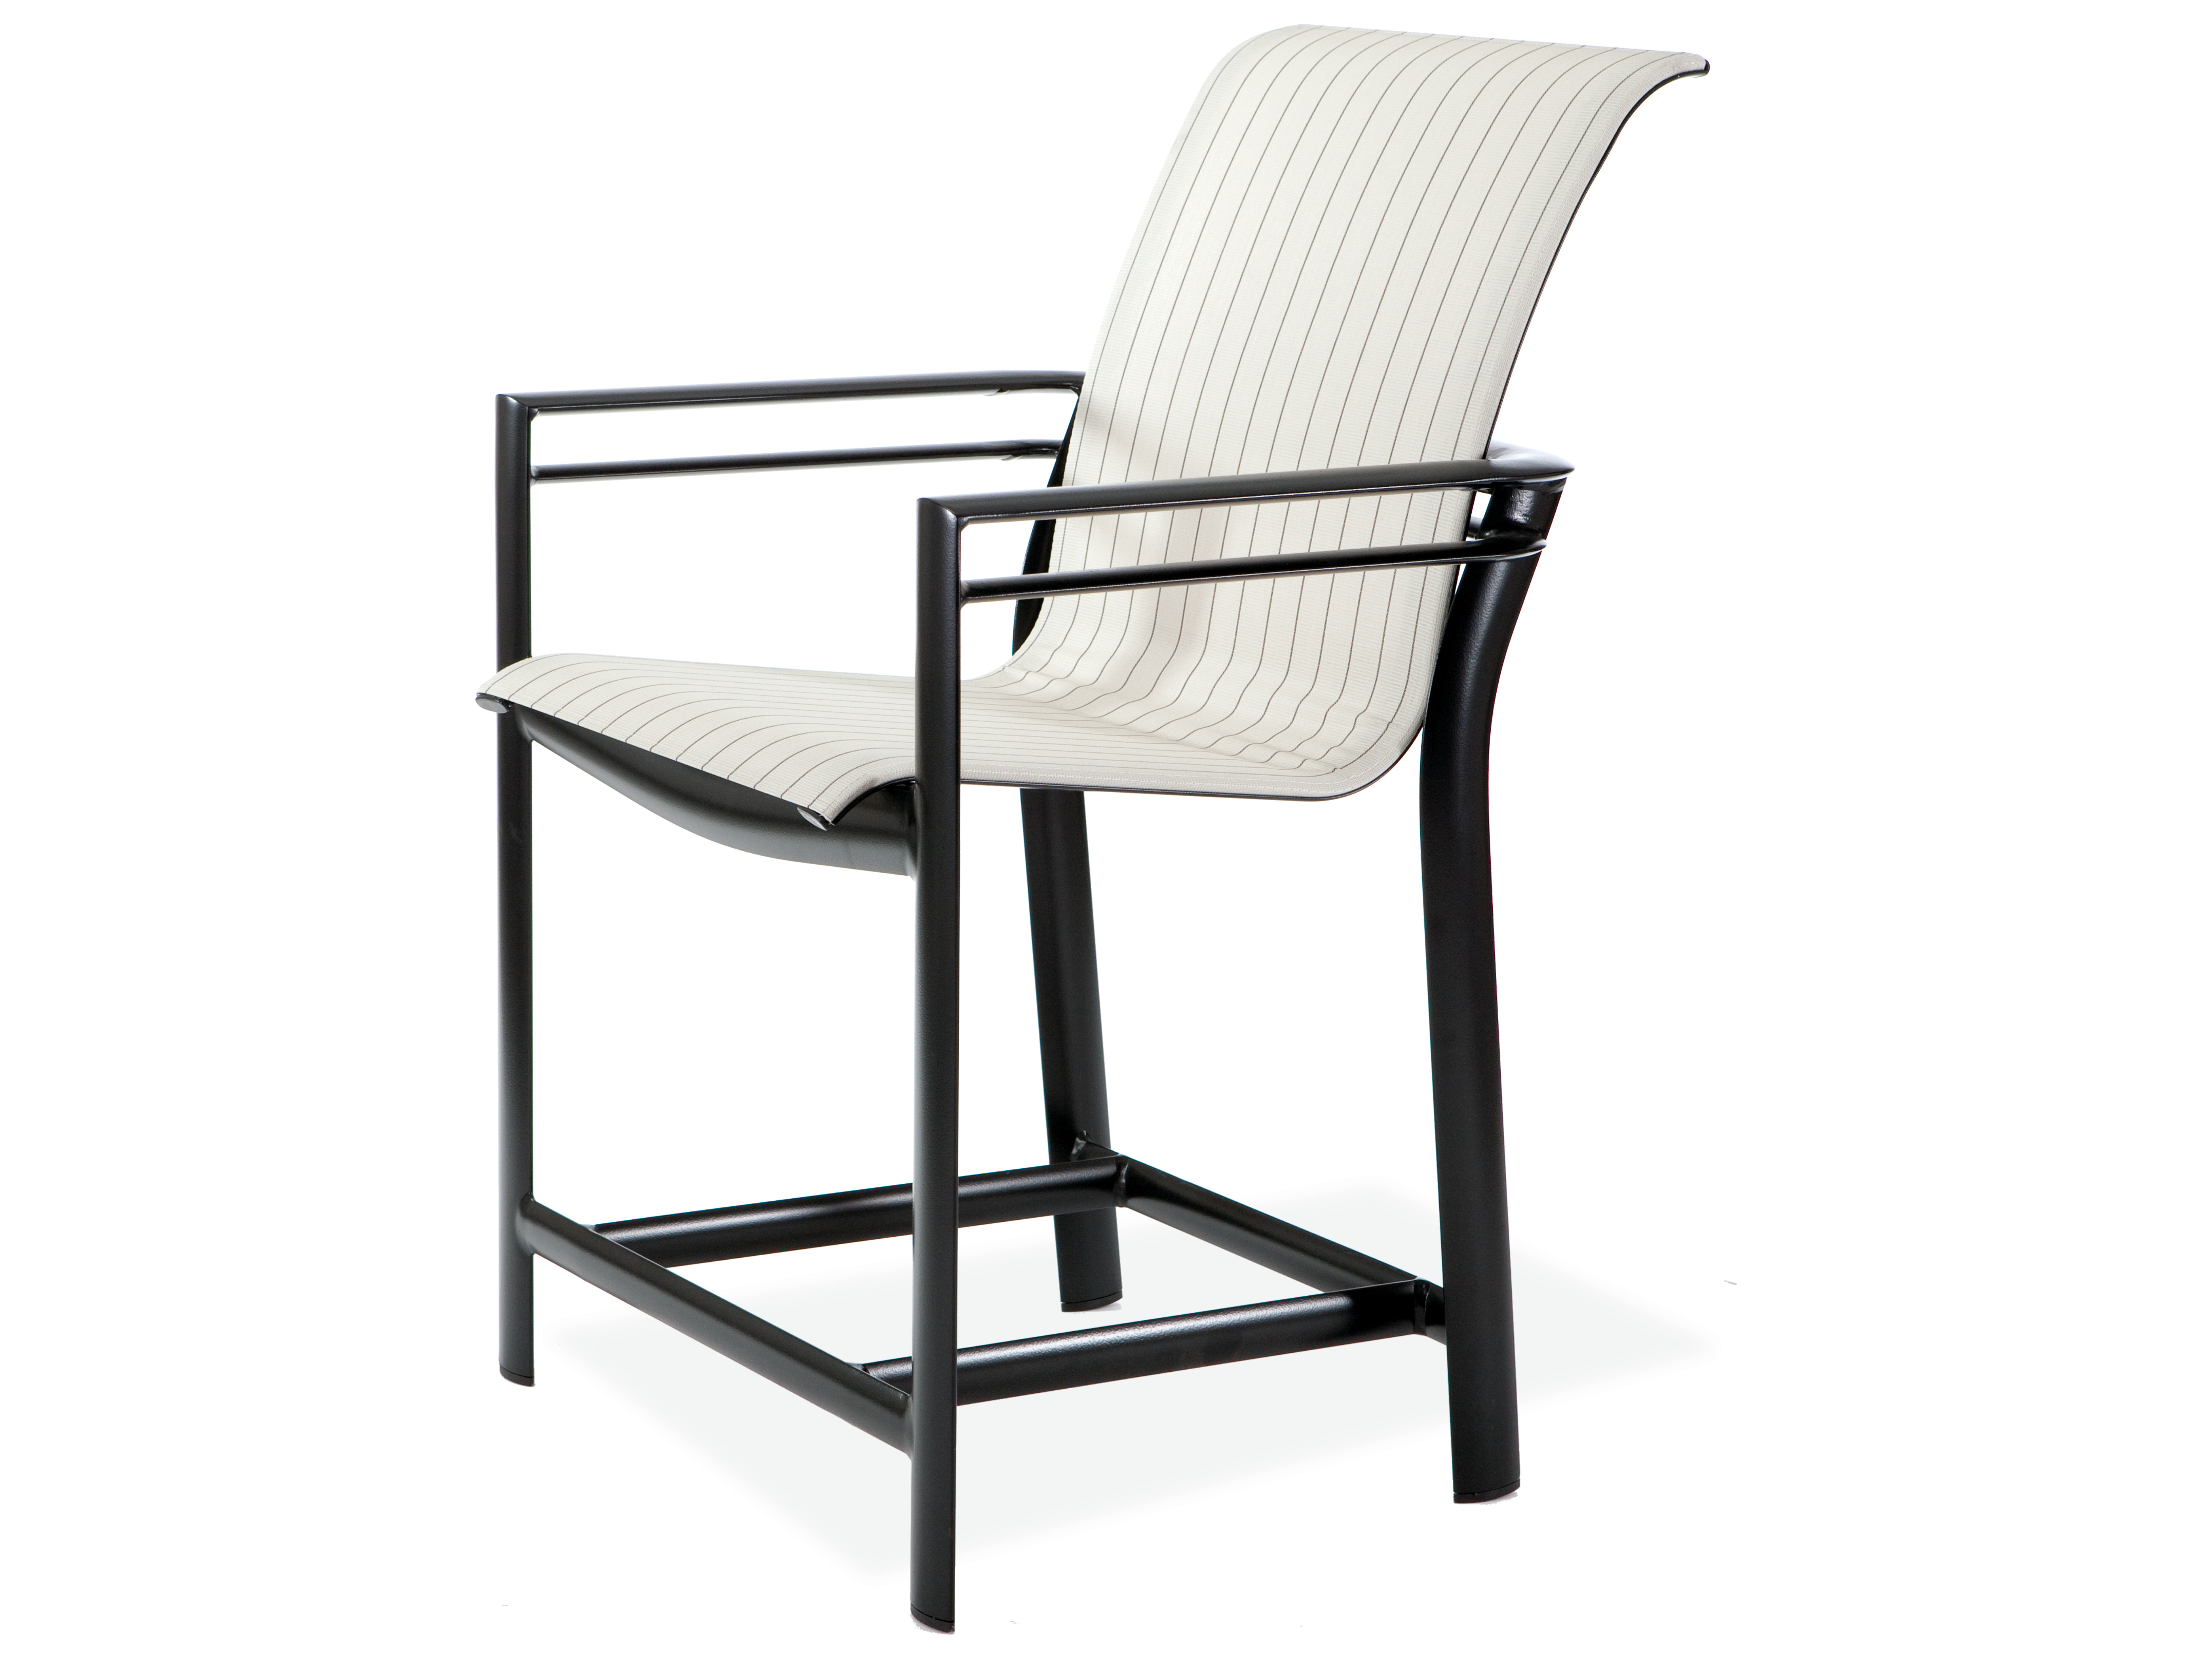 Winston Southern Cay Sling Aluminum Armless Chaise Lounge: Winston Southern Cay Sling Aluminum Arm Counter Stool